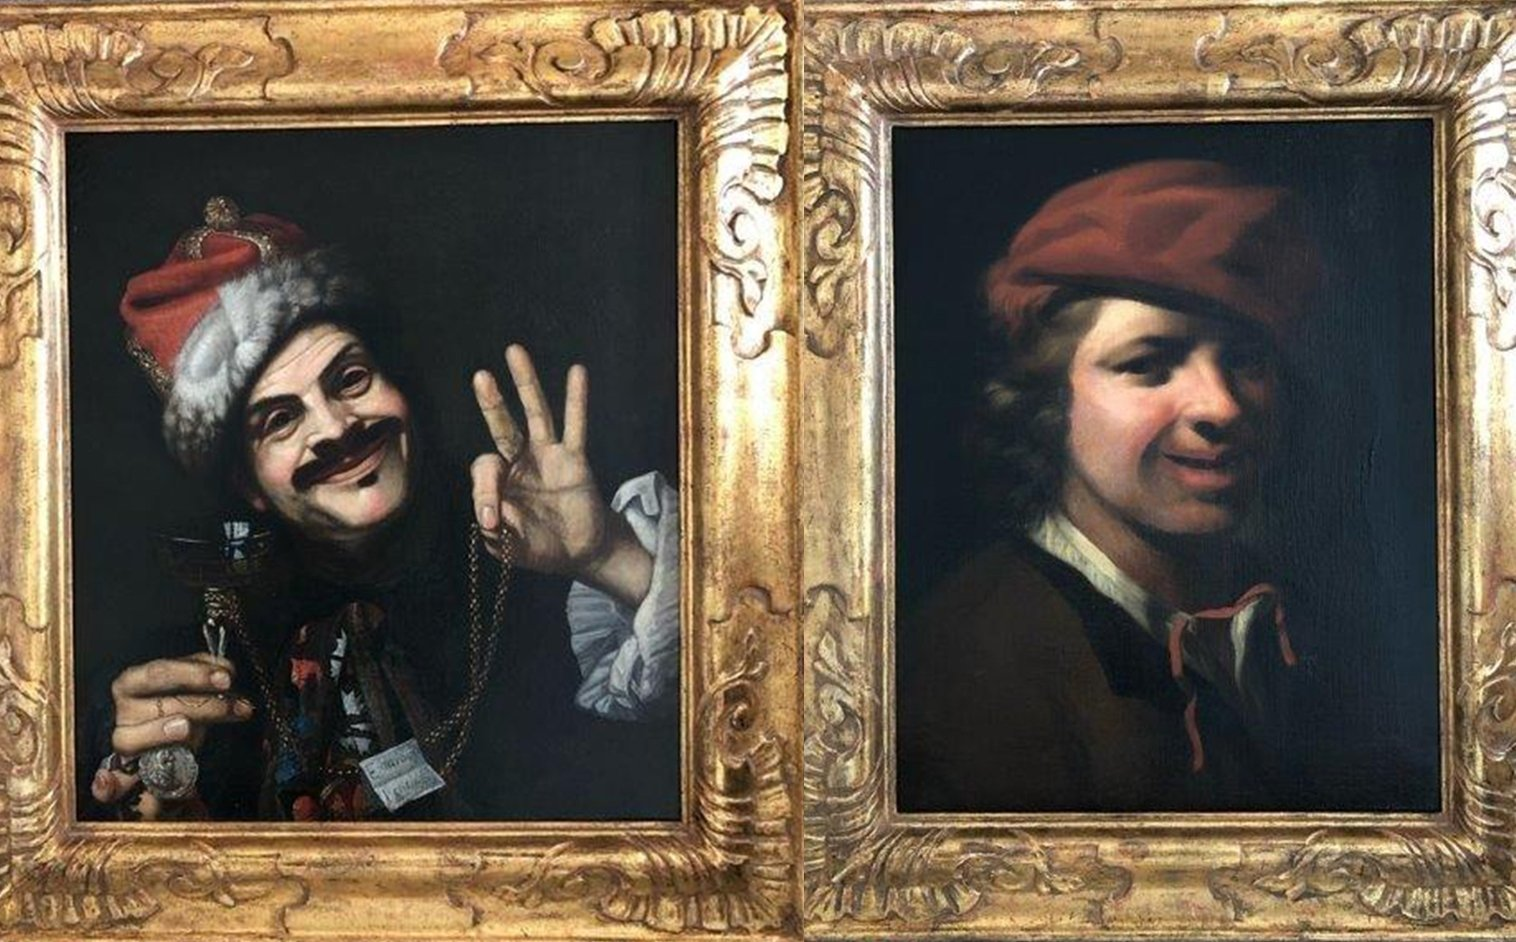 """""""Self-portrait of the artist as Laughter"""" by Italian 17th-century artist Pietro Bellotti (L) and """"Portrait of a young boy"""" by Samuel van Hoogstraten are seen in this combination photo made from images shared by the police in Bavaria, Germany, June 20, 2021"""